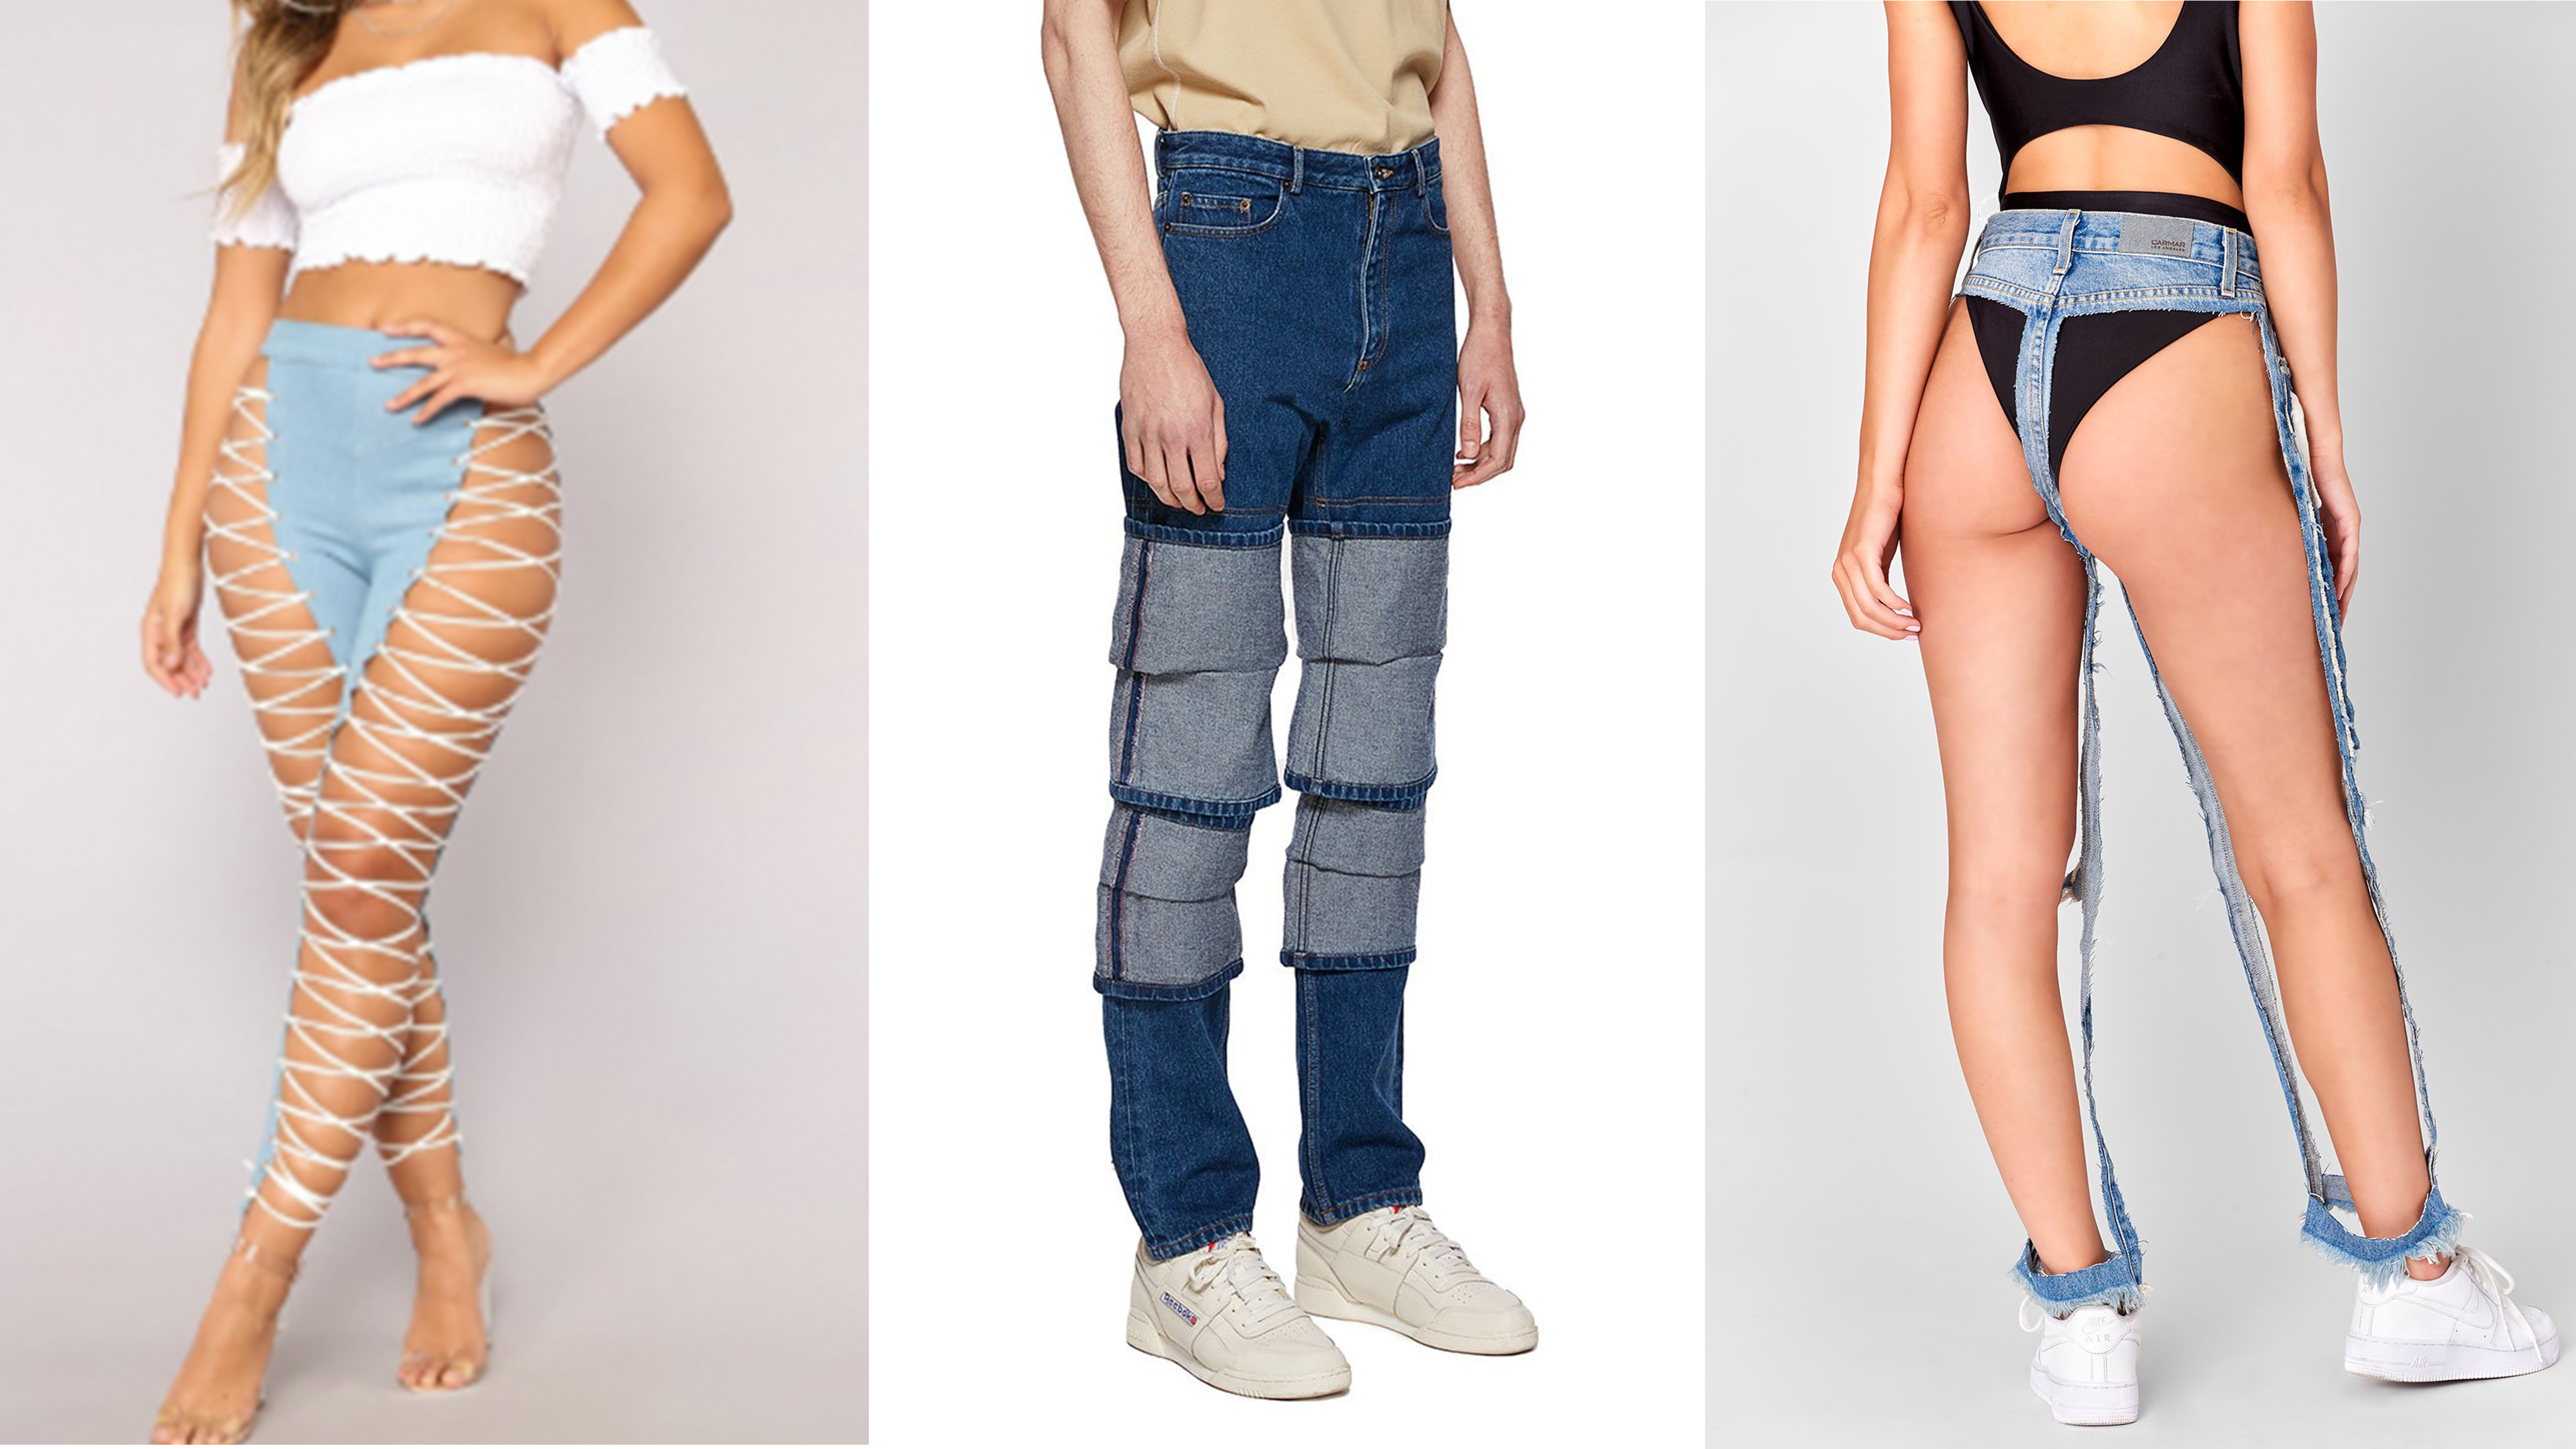 8 Terrible Jeans That Prove Denim Has Gone Too Far